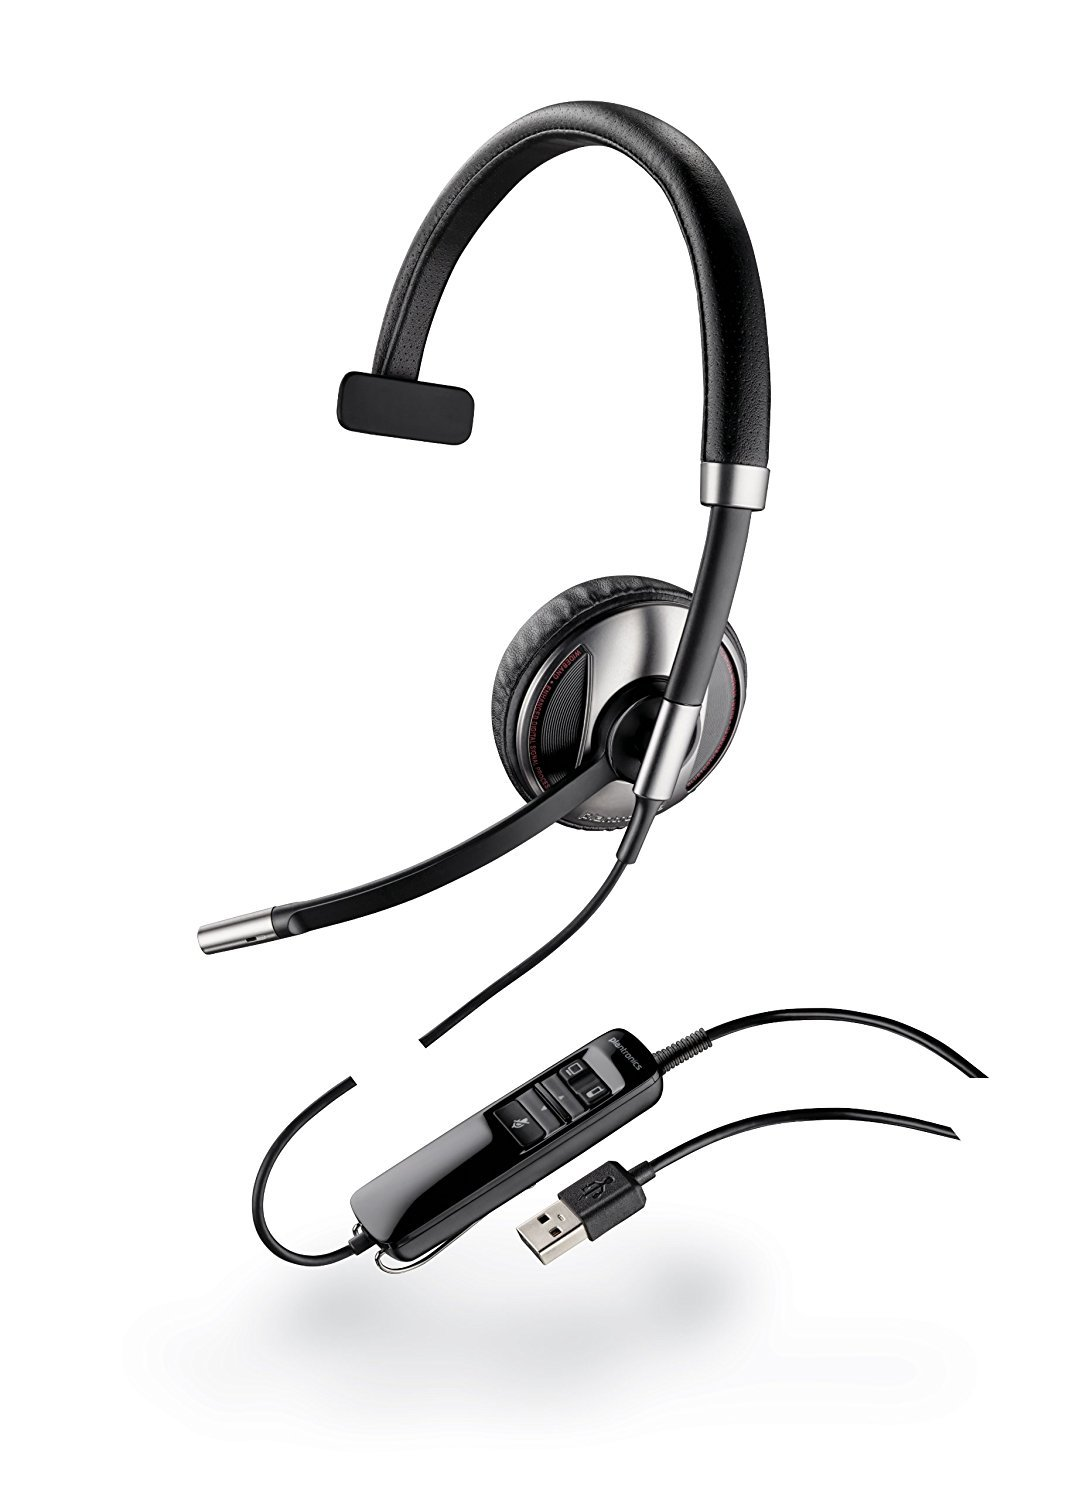 Plantronics Blackwire C710-M Wired Headset - Retail Packaging - Black 87505-01